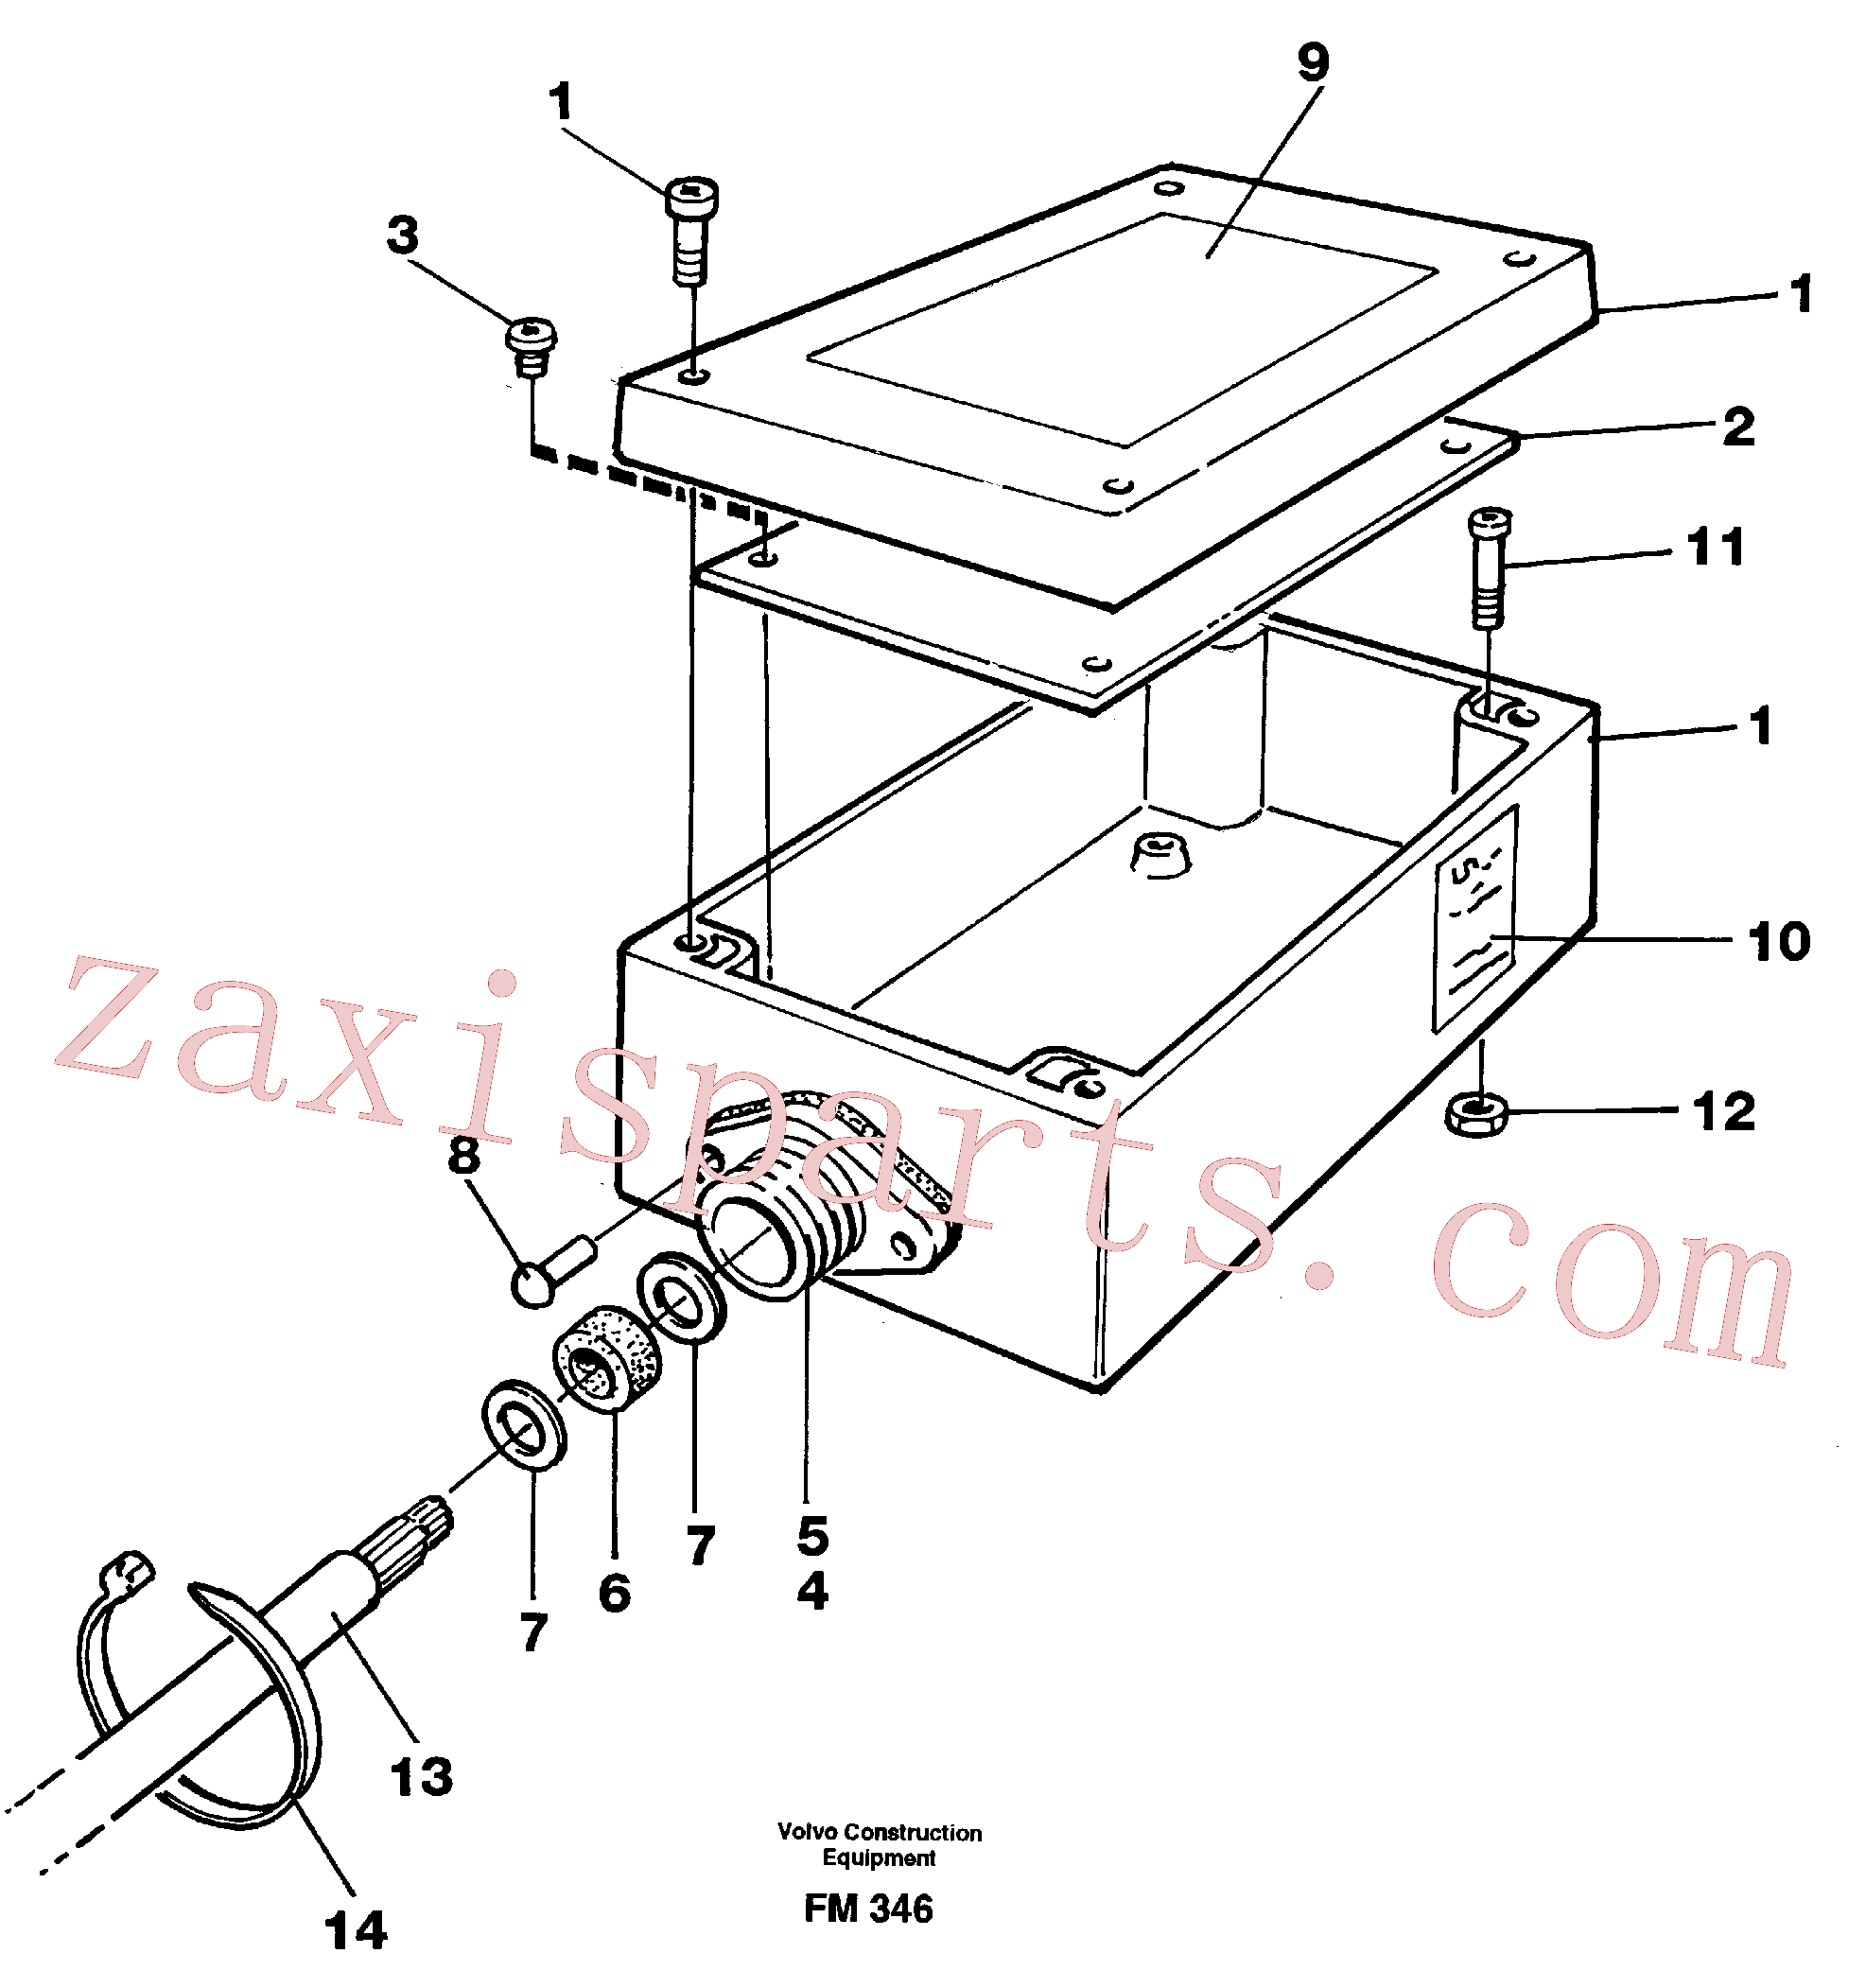 VOE14242157 for Volvo Electric installation for load limiting device(FM346 assembly)